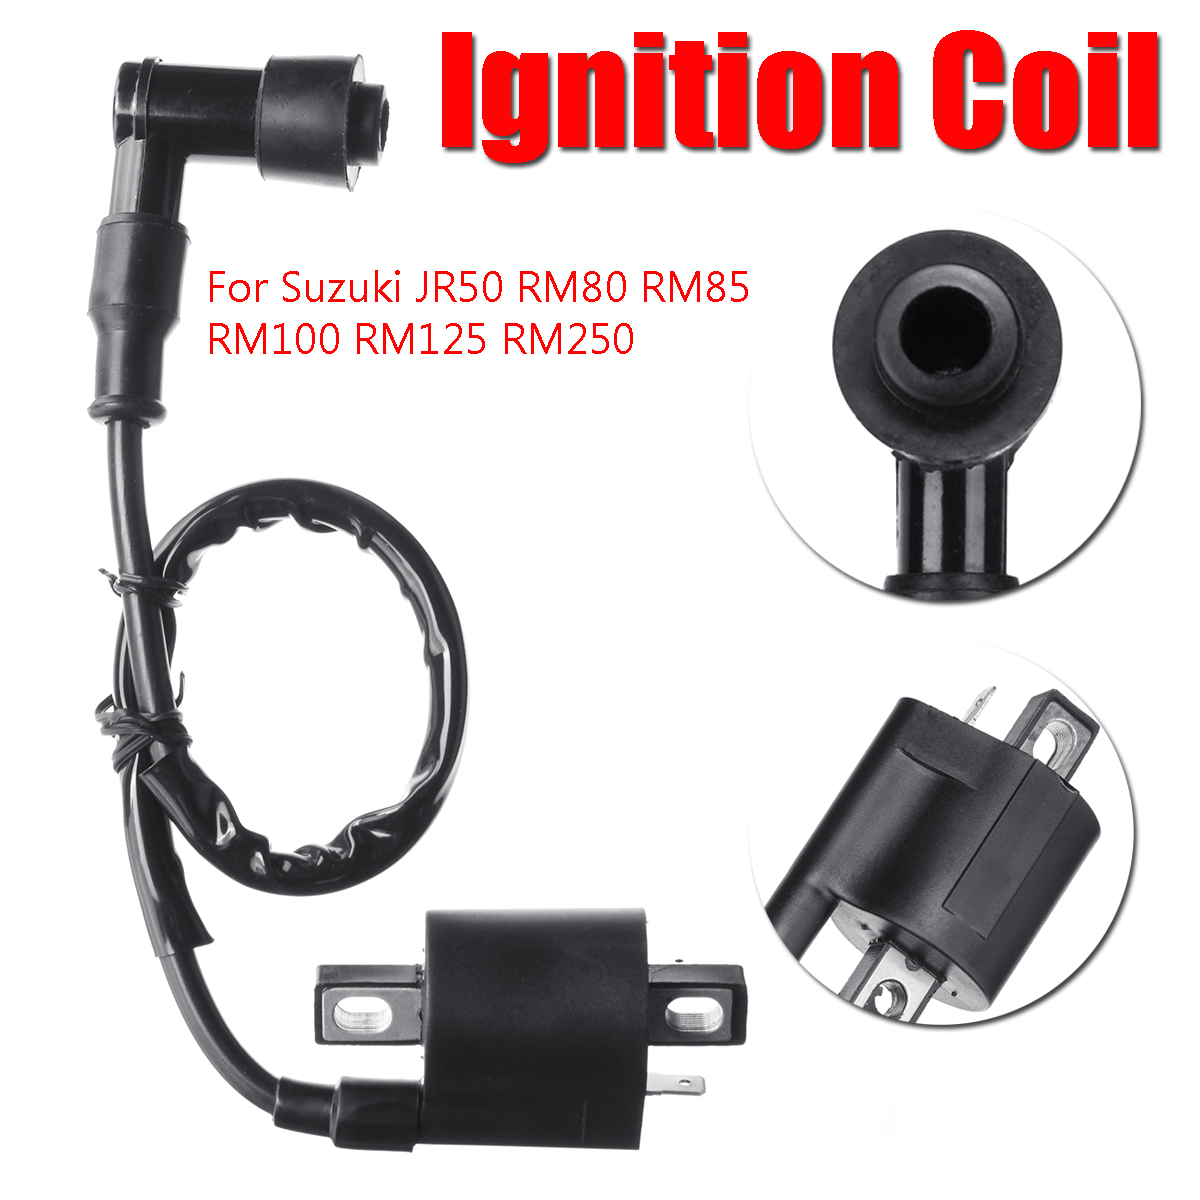 Ignition Coil Replacement For Suzuki JR50 RM80 RM85 RM100 RM125 RM250